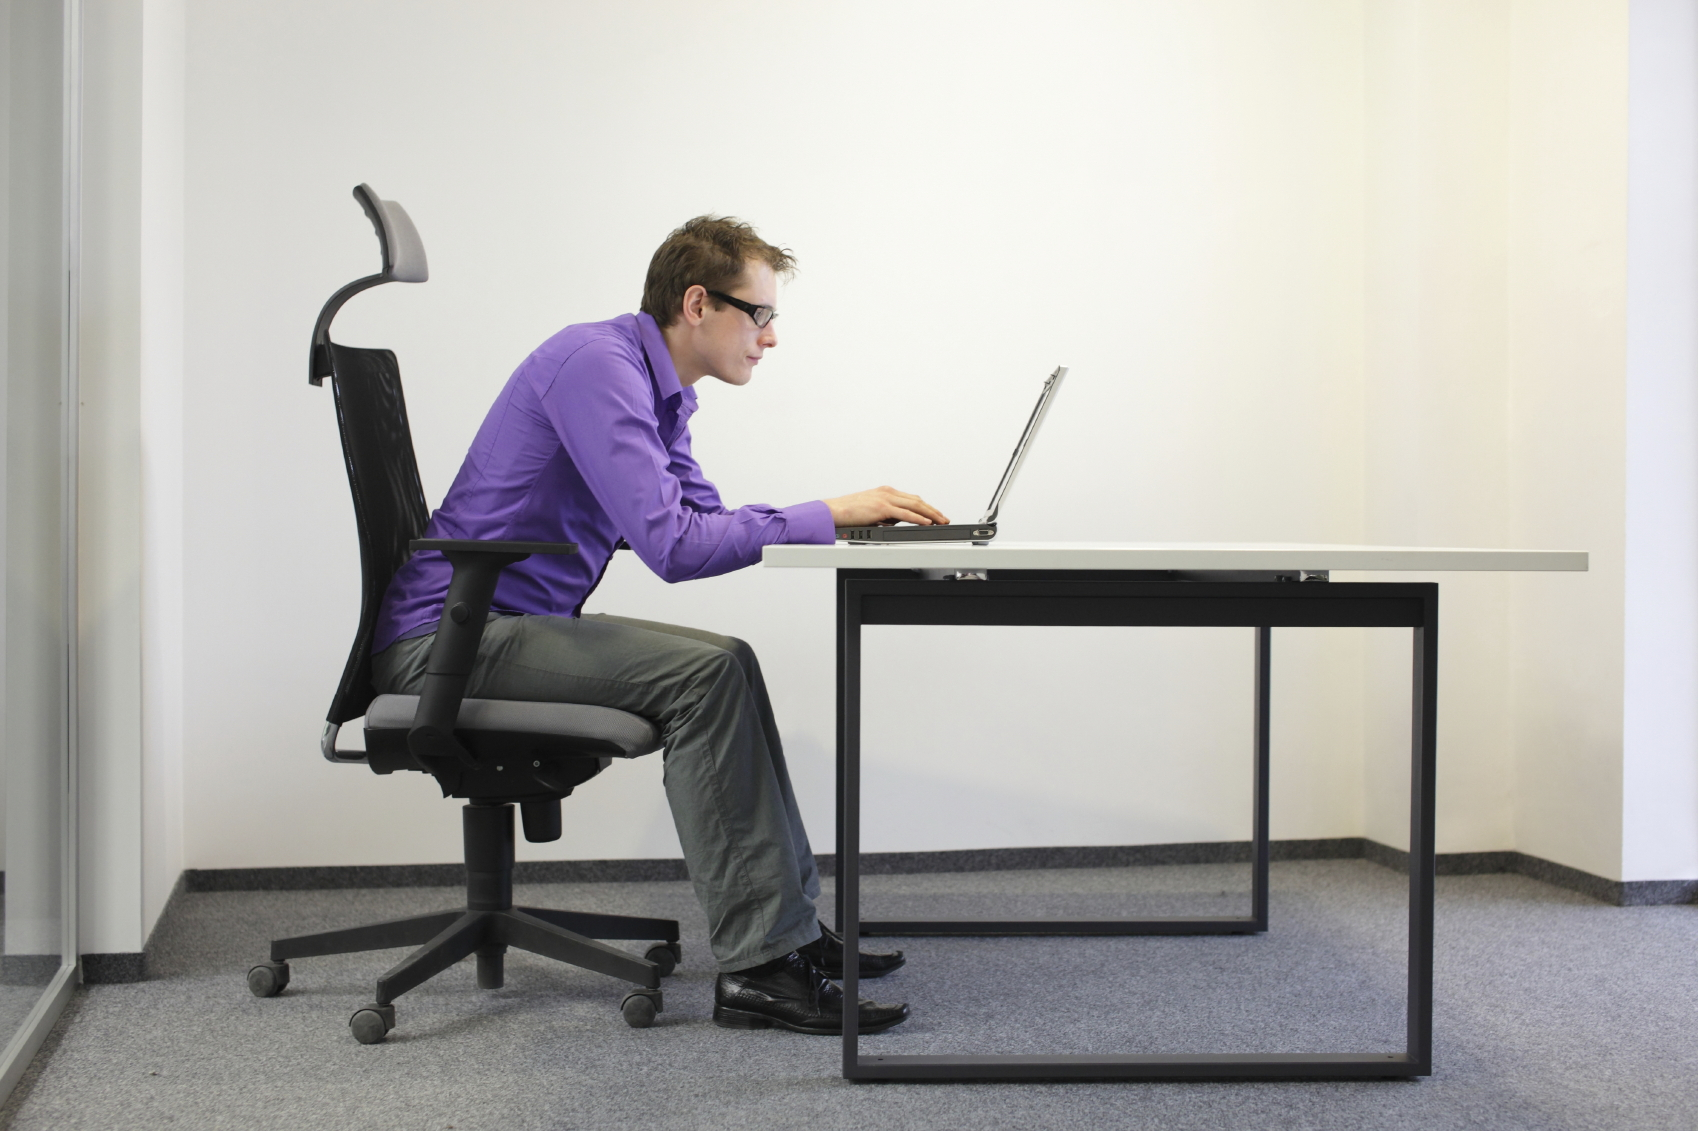 Poor posture will destroy your body